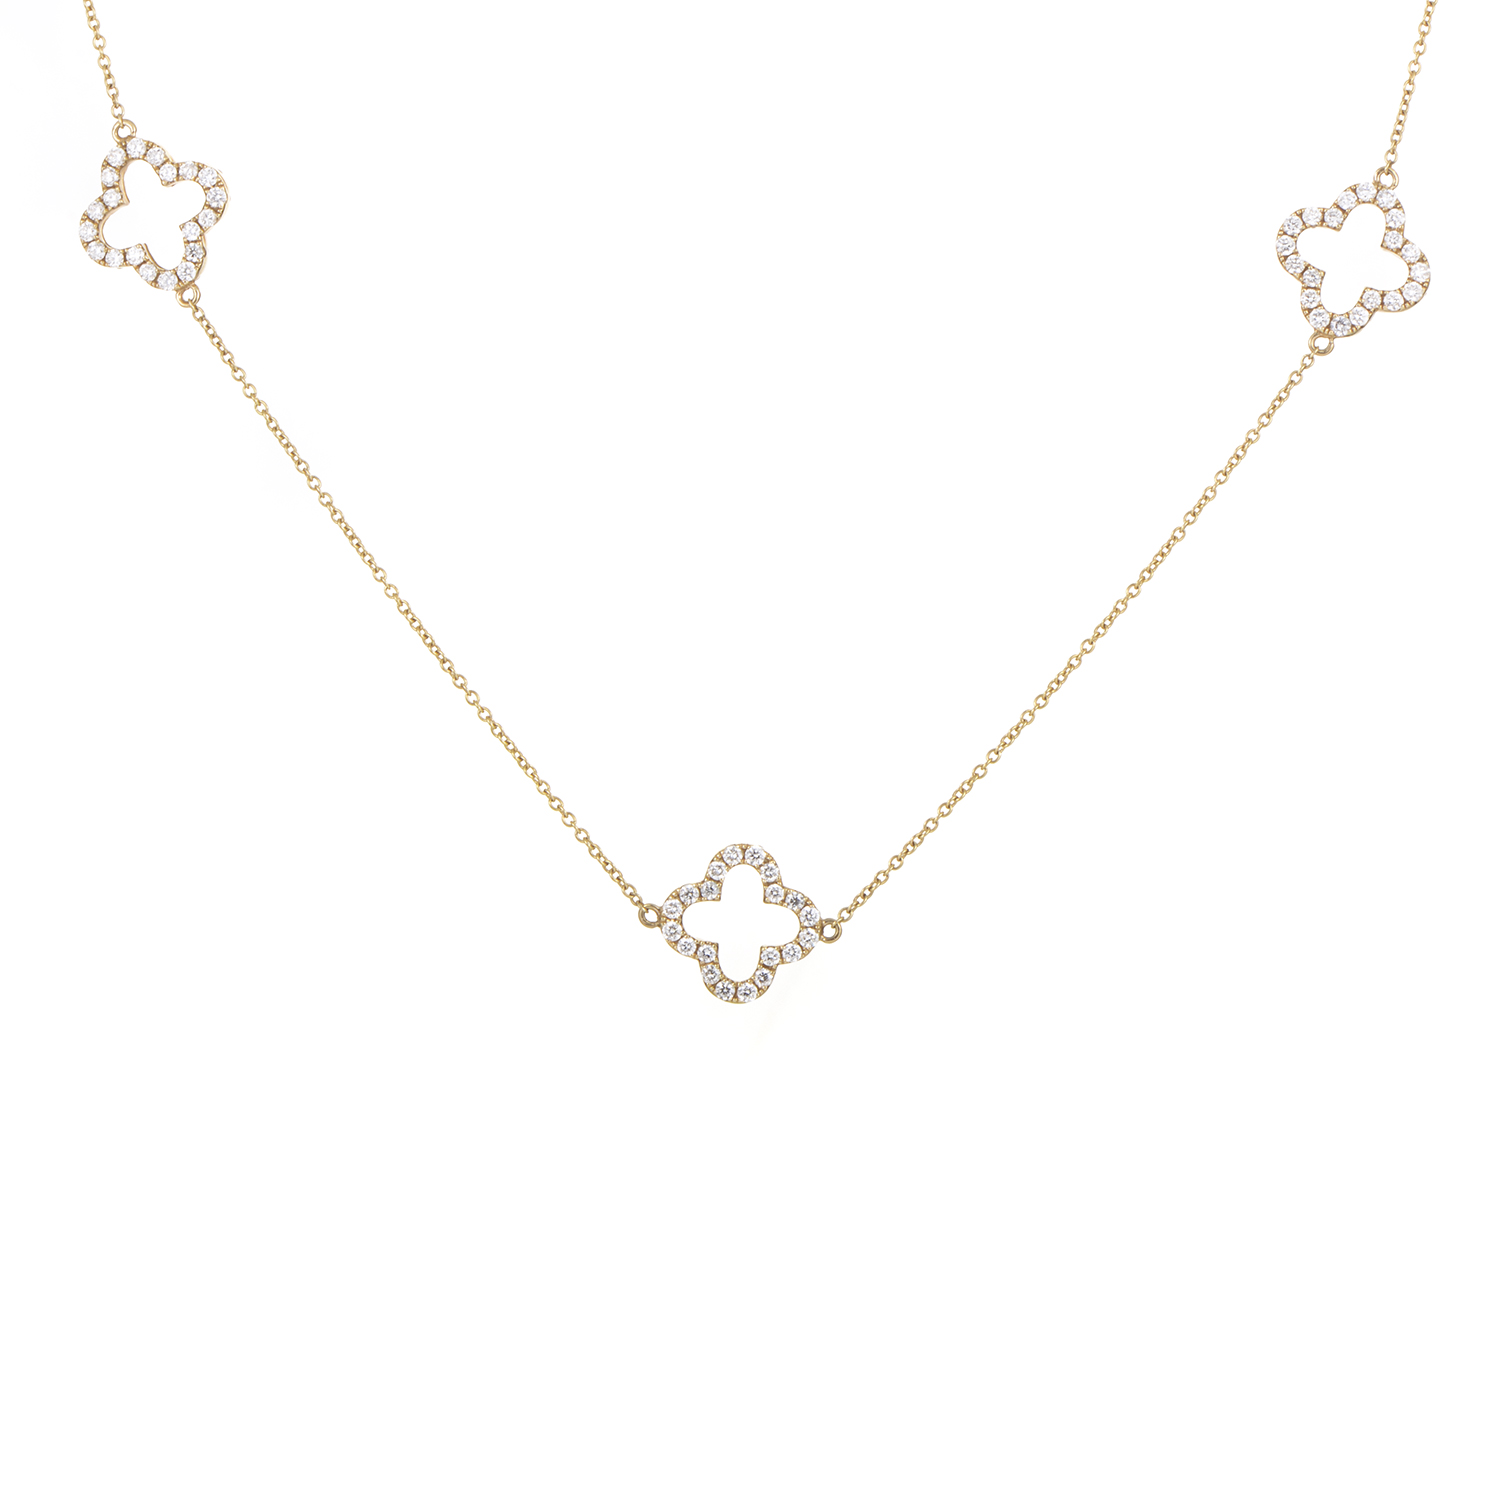 Women's 18K Yellow Gold & Diamond Quatrefoil Sautoir Necklace